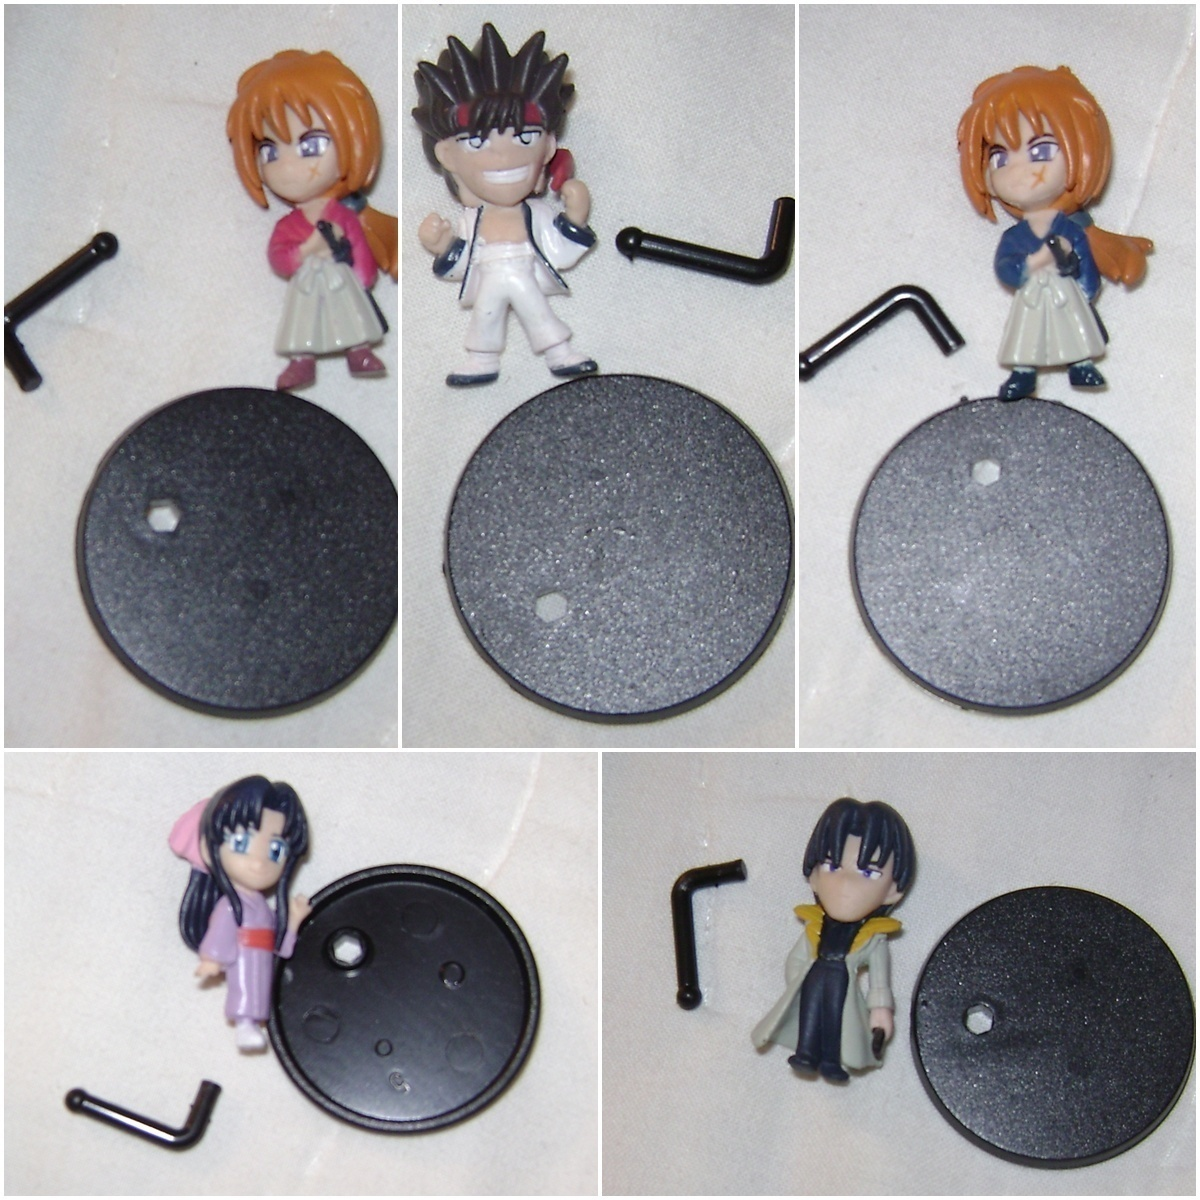 RUROUNI KENSHIN ANIME GACHAPON FIGURE SET OF 5